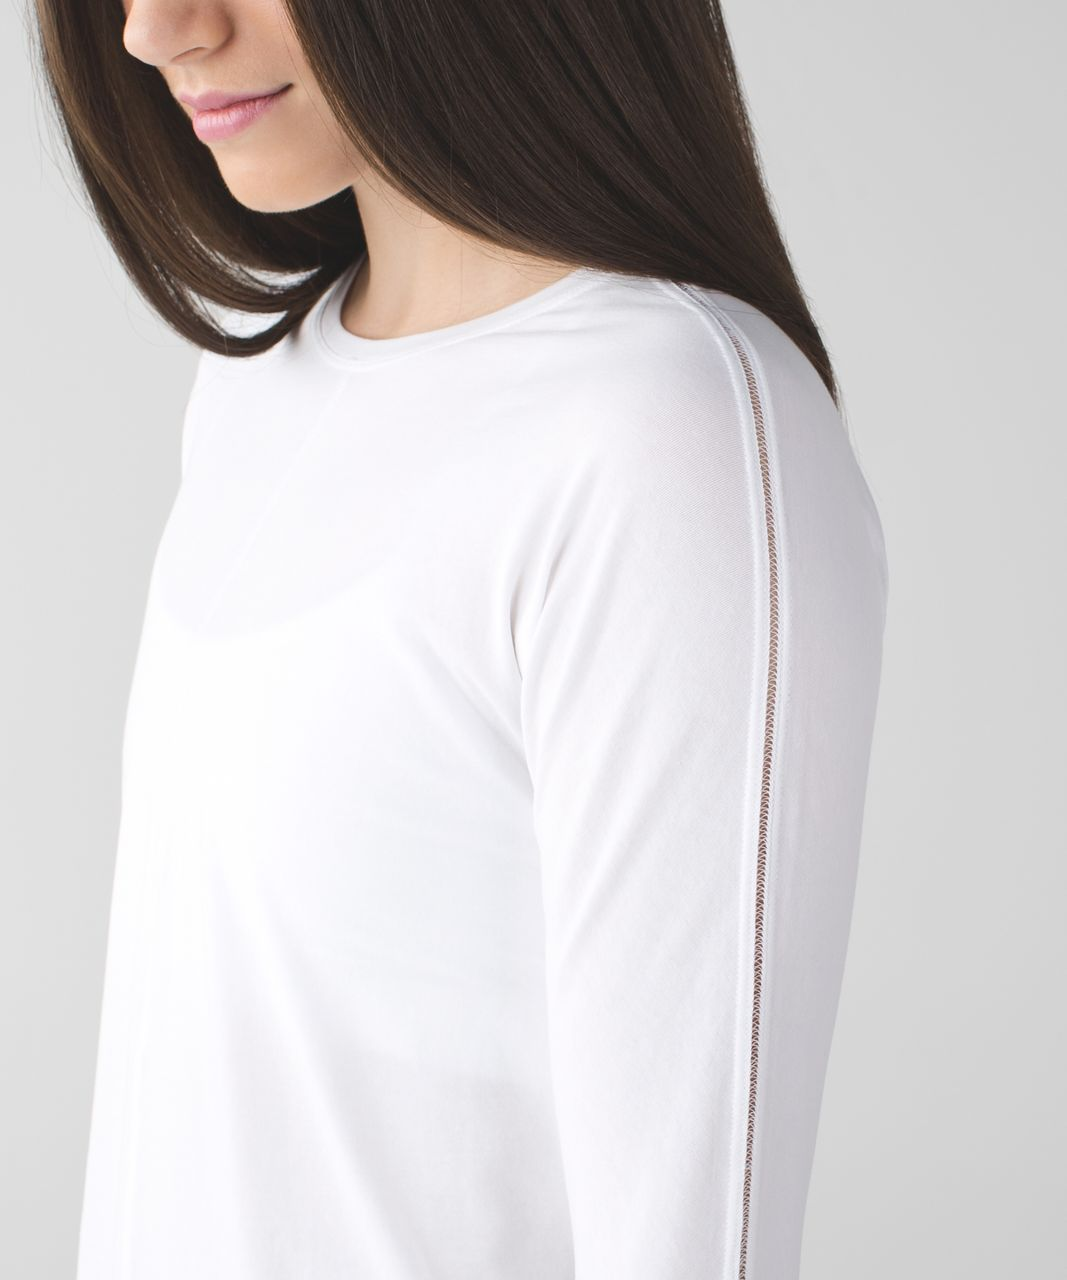 Lululemon Trapeze Long Sleeve - White